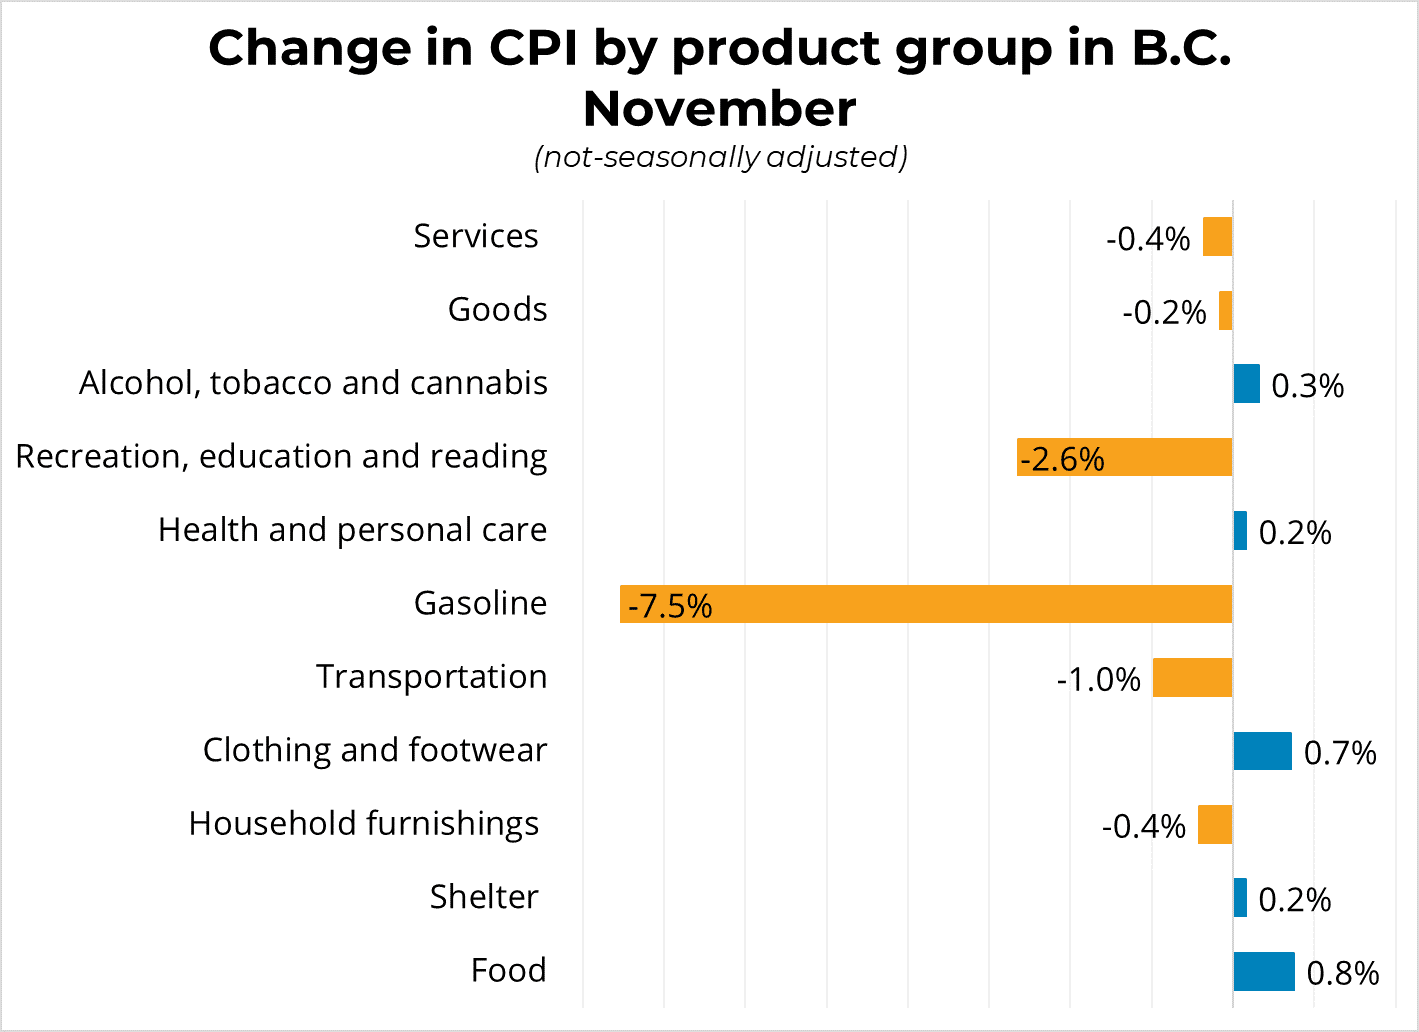 Change in CPI by product group in BC - November 2019